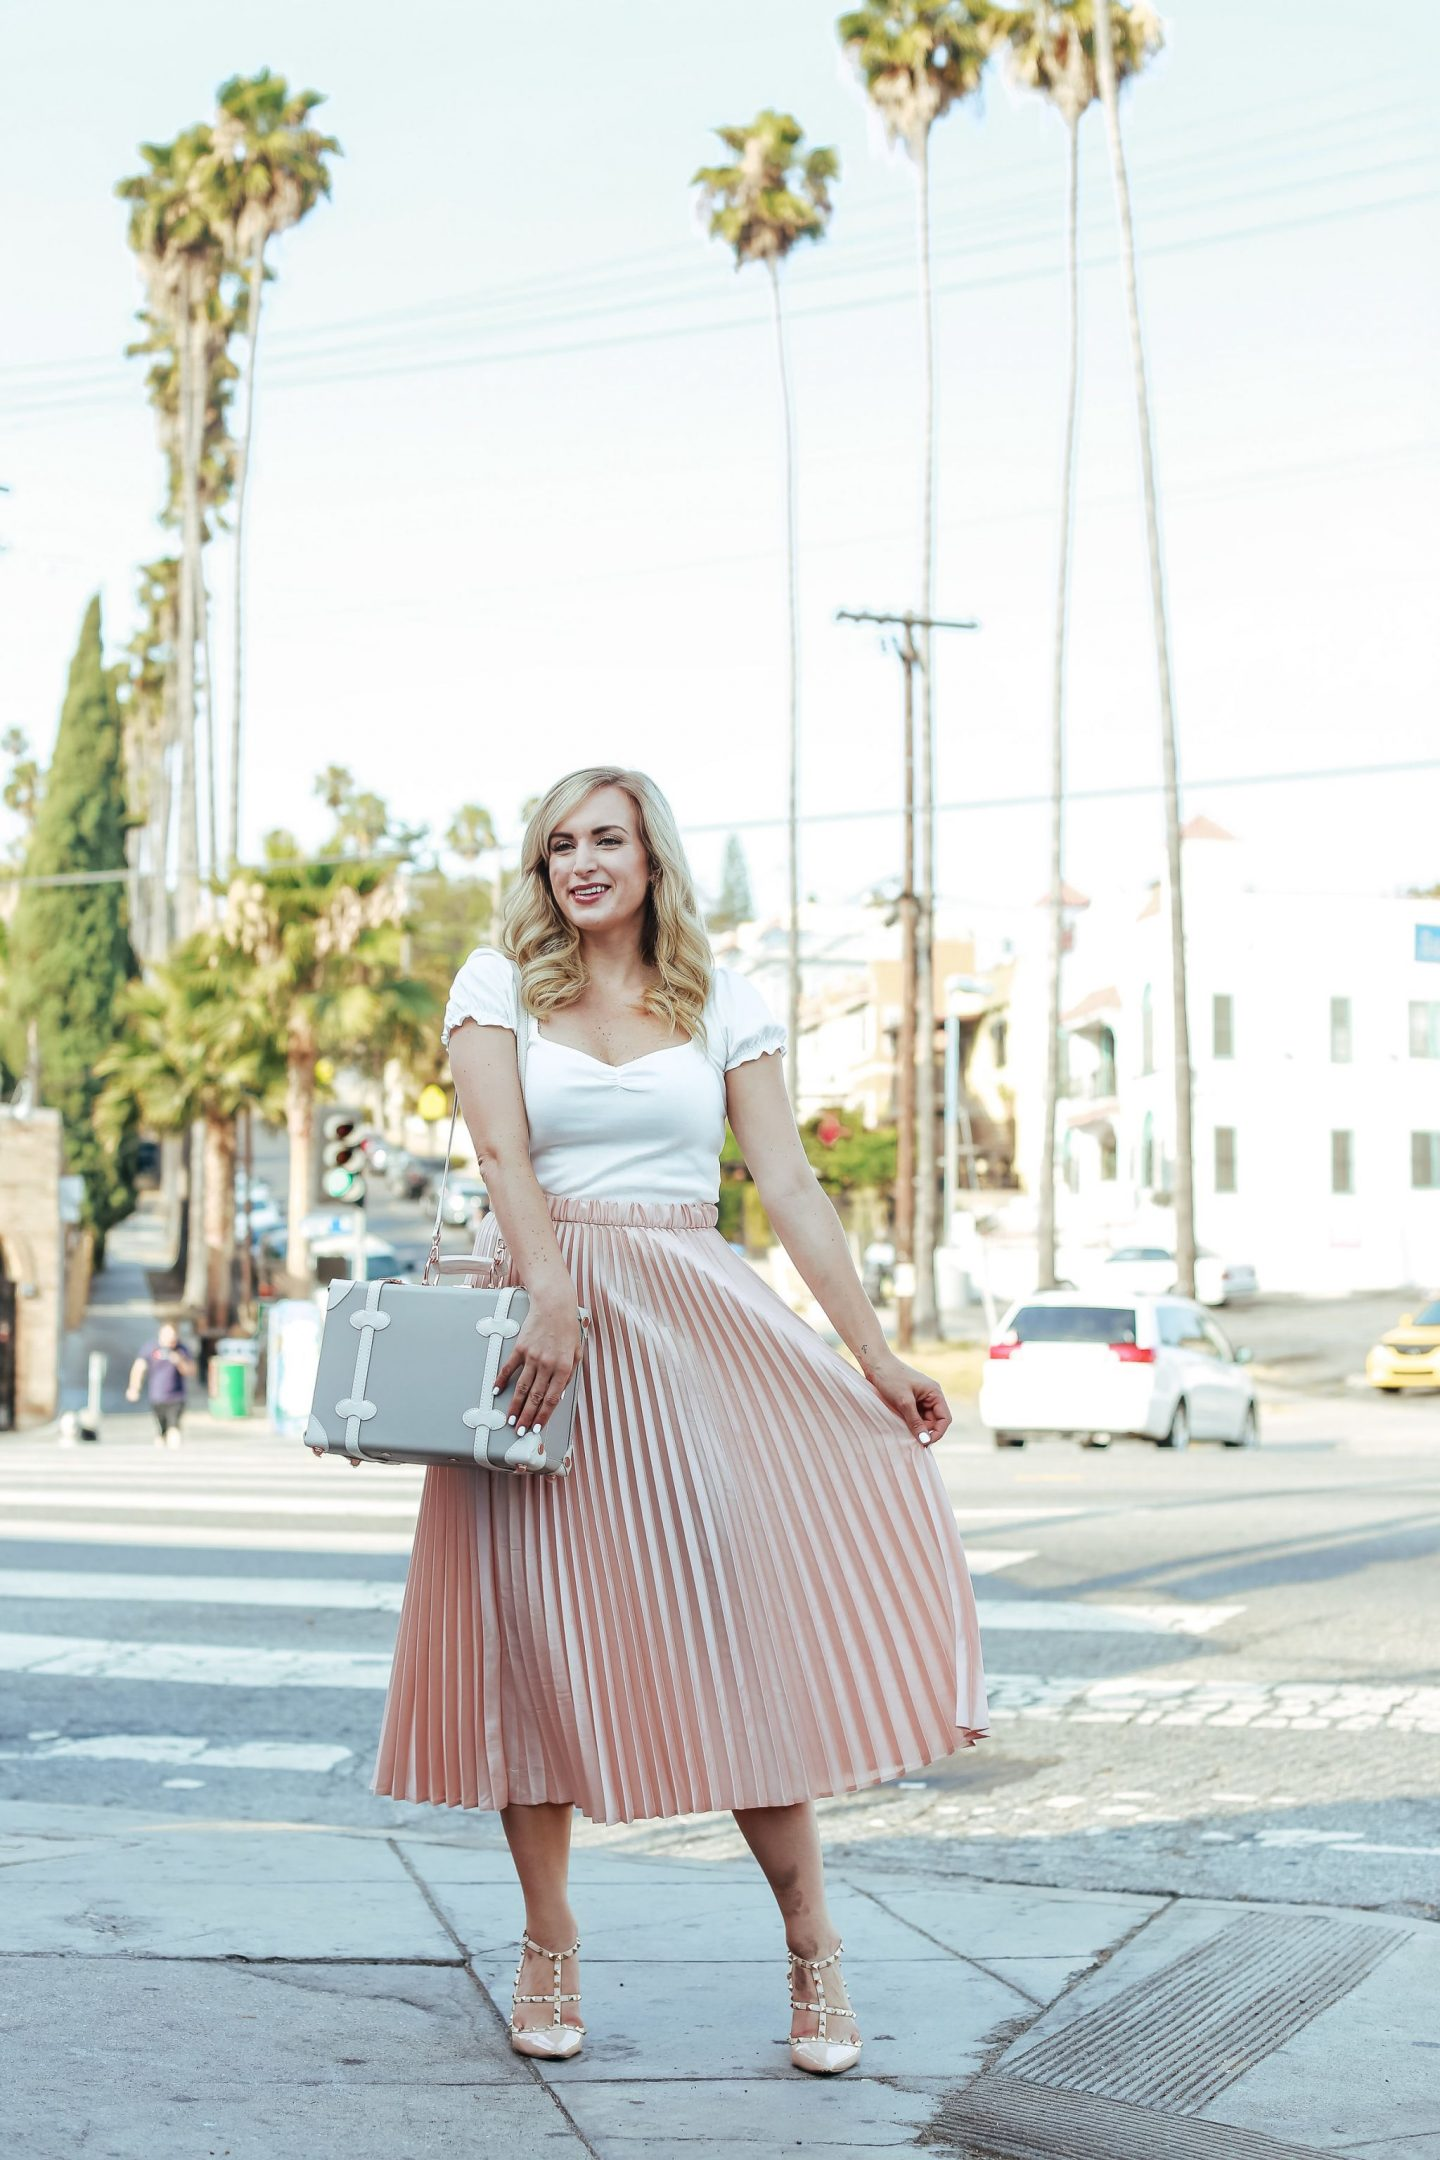 legallee blonde vintage inspired outfit pink pleated skirt